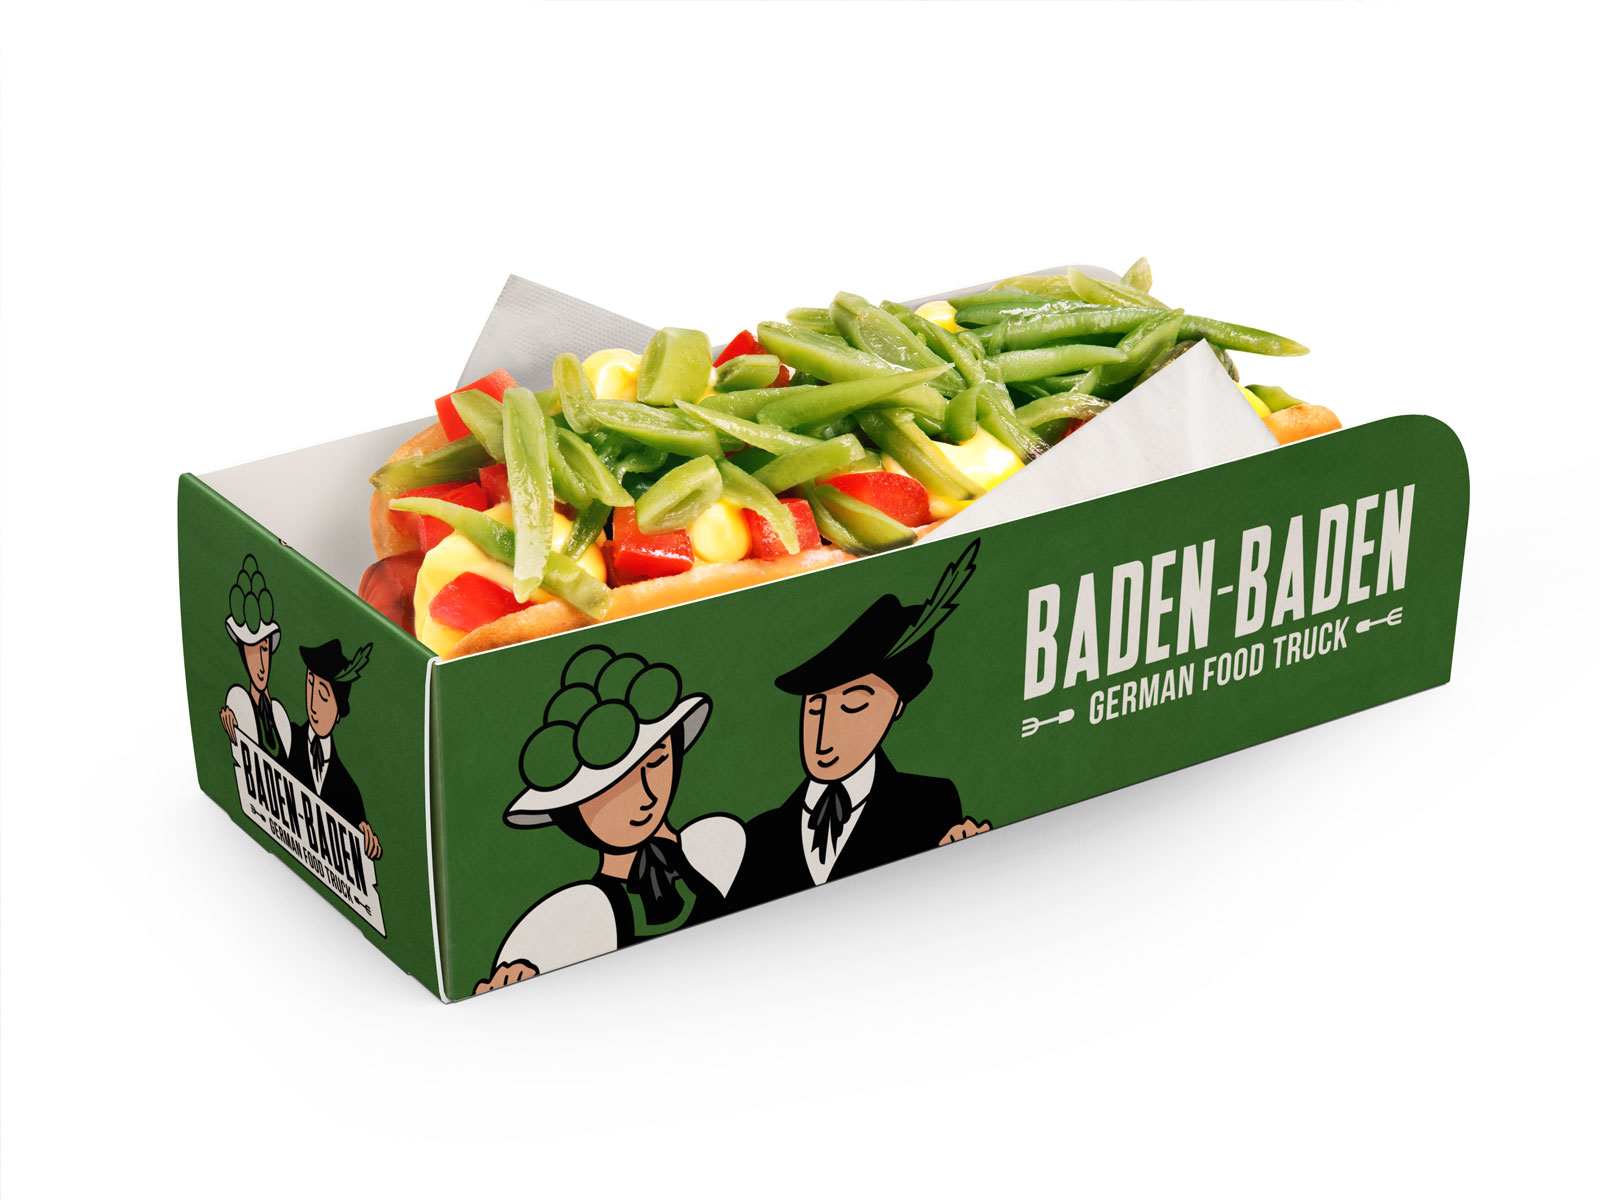 packaging-Badeb-Baden-Food-Truck